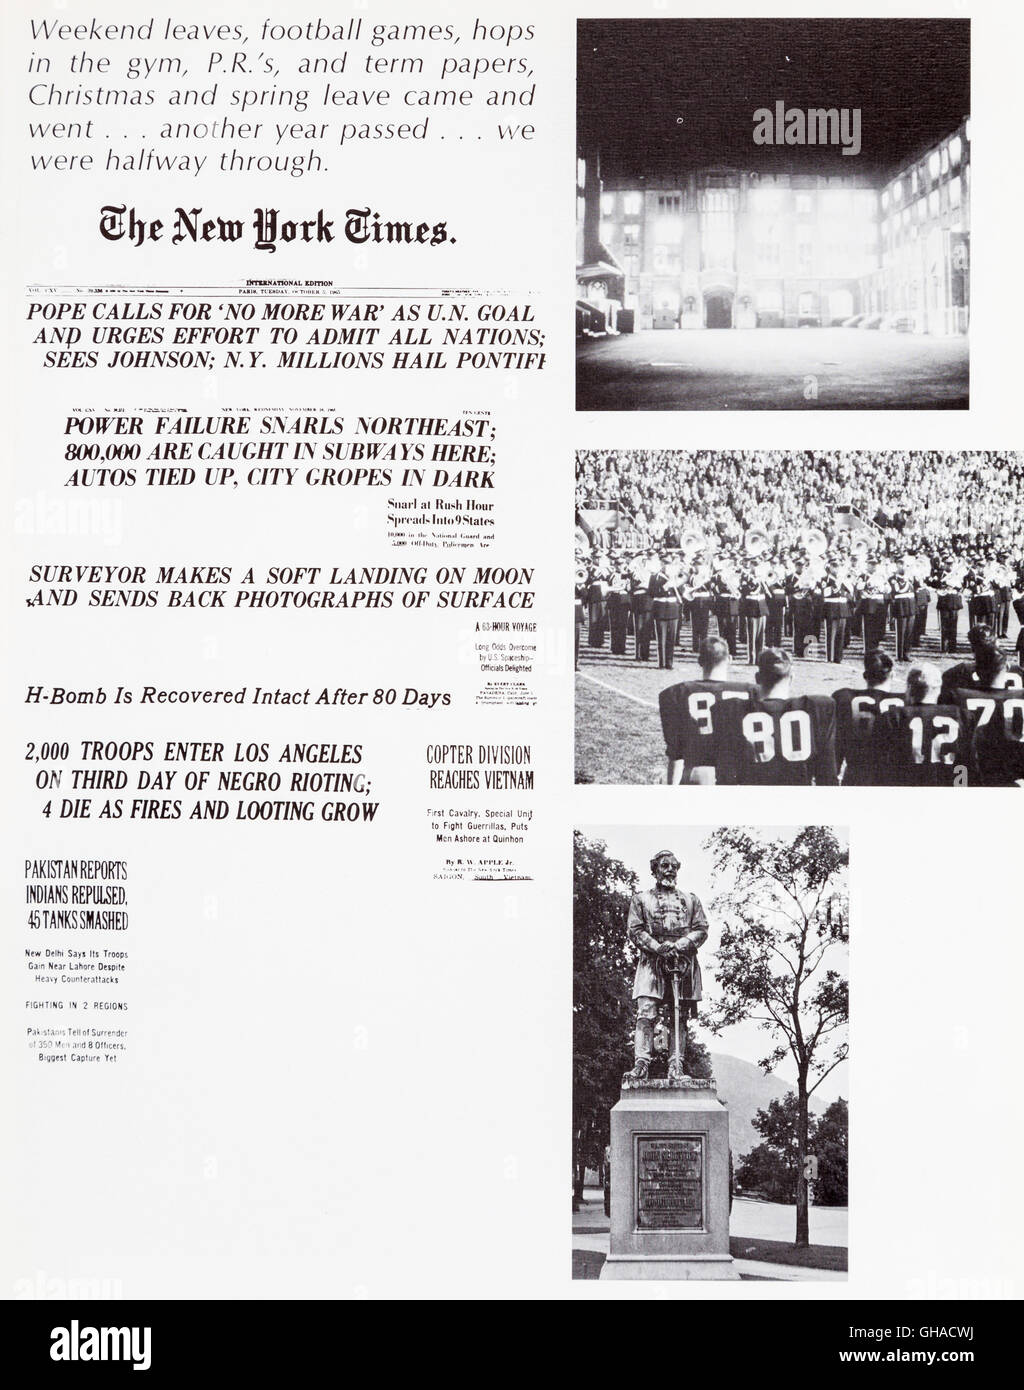 Major Newspaper Headlines from 1965 and 1966 Yearbook, Howitzer, United States Military Academy, West Point, 1960s - Stock Image